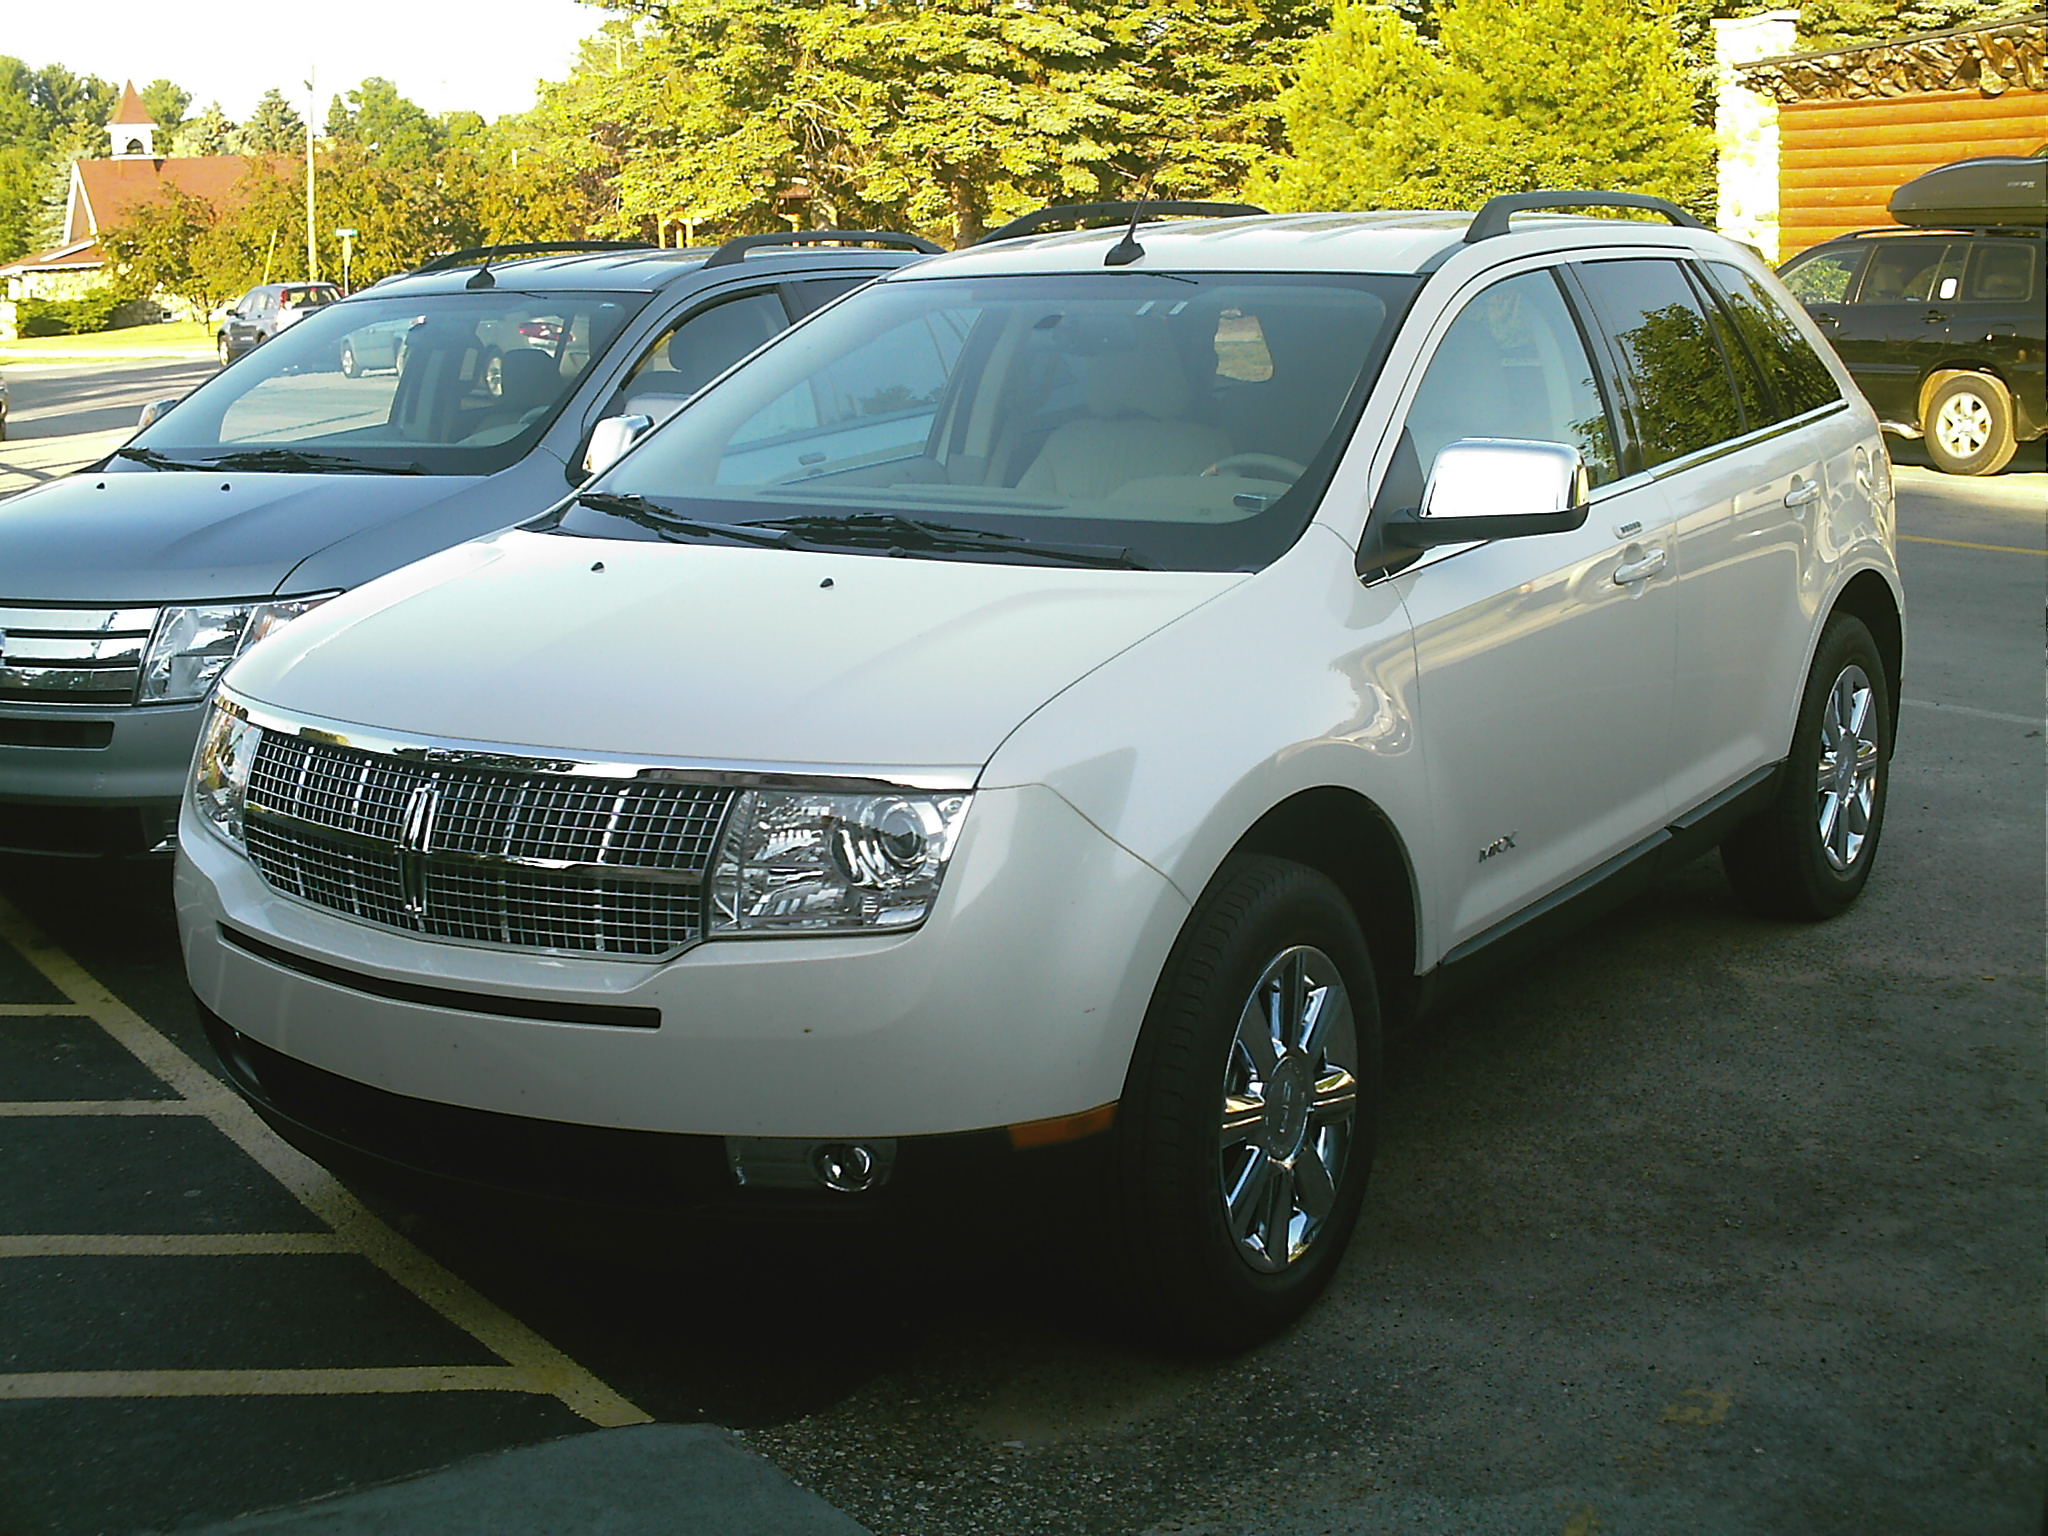 2007 Lincoln Mkx #3